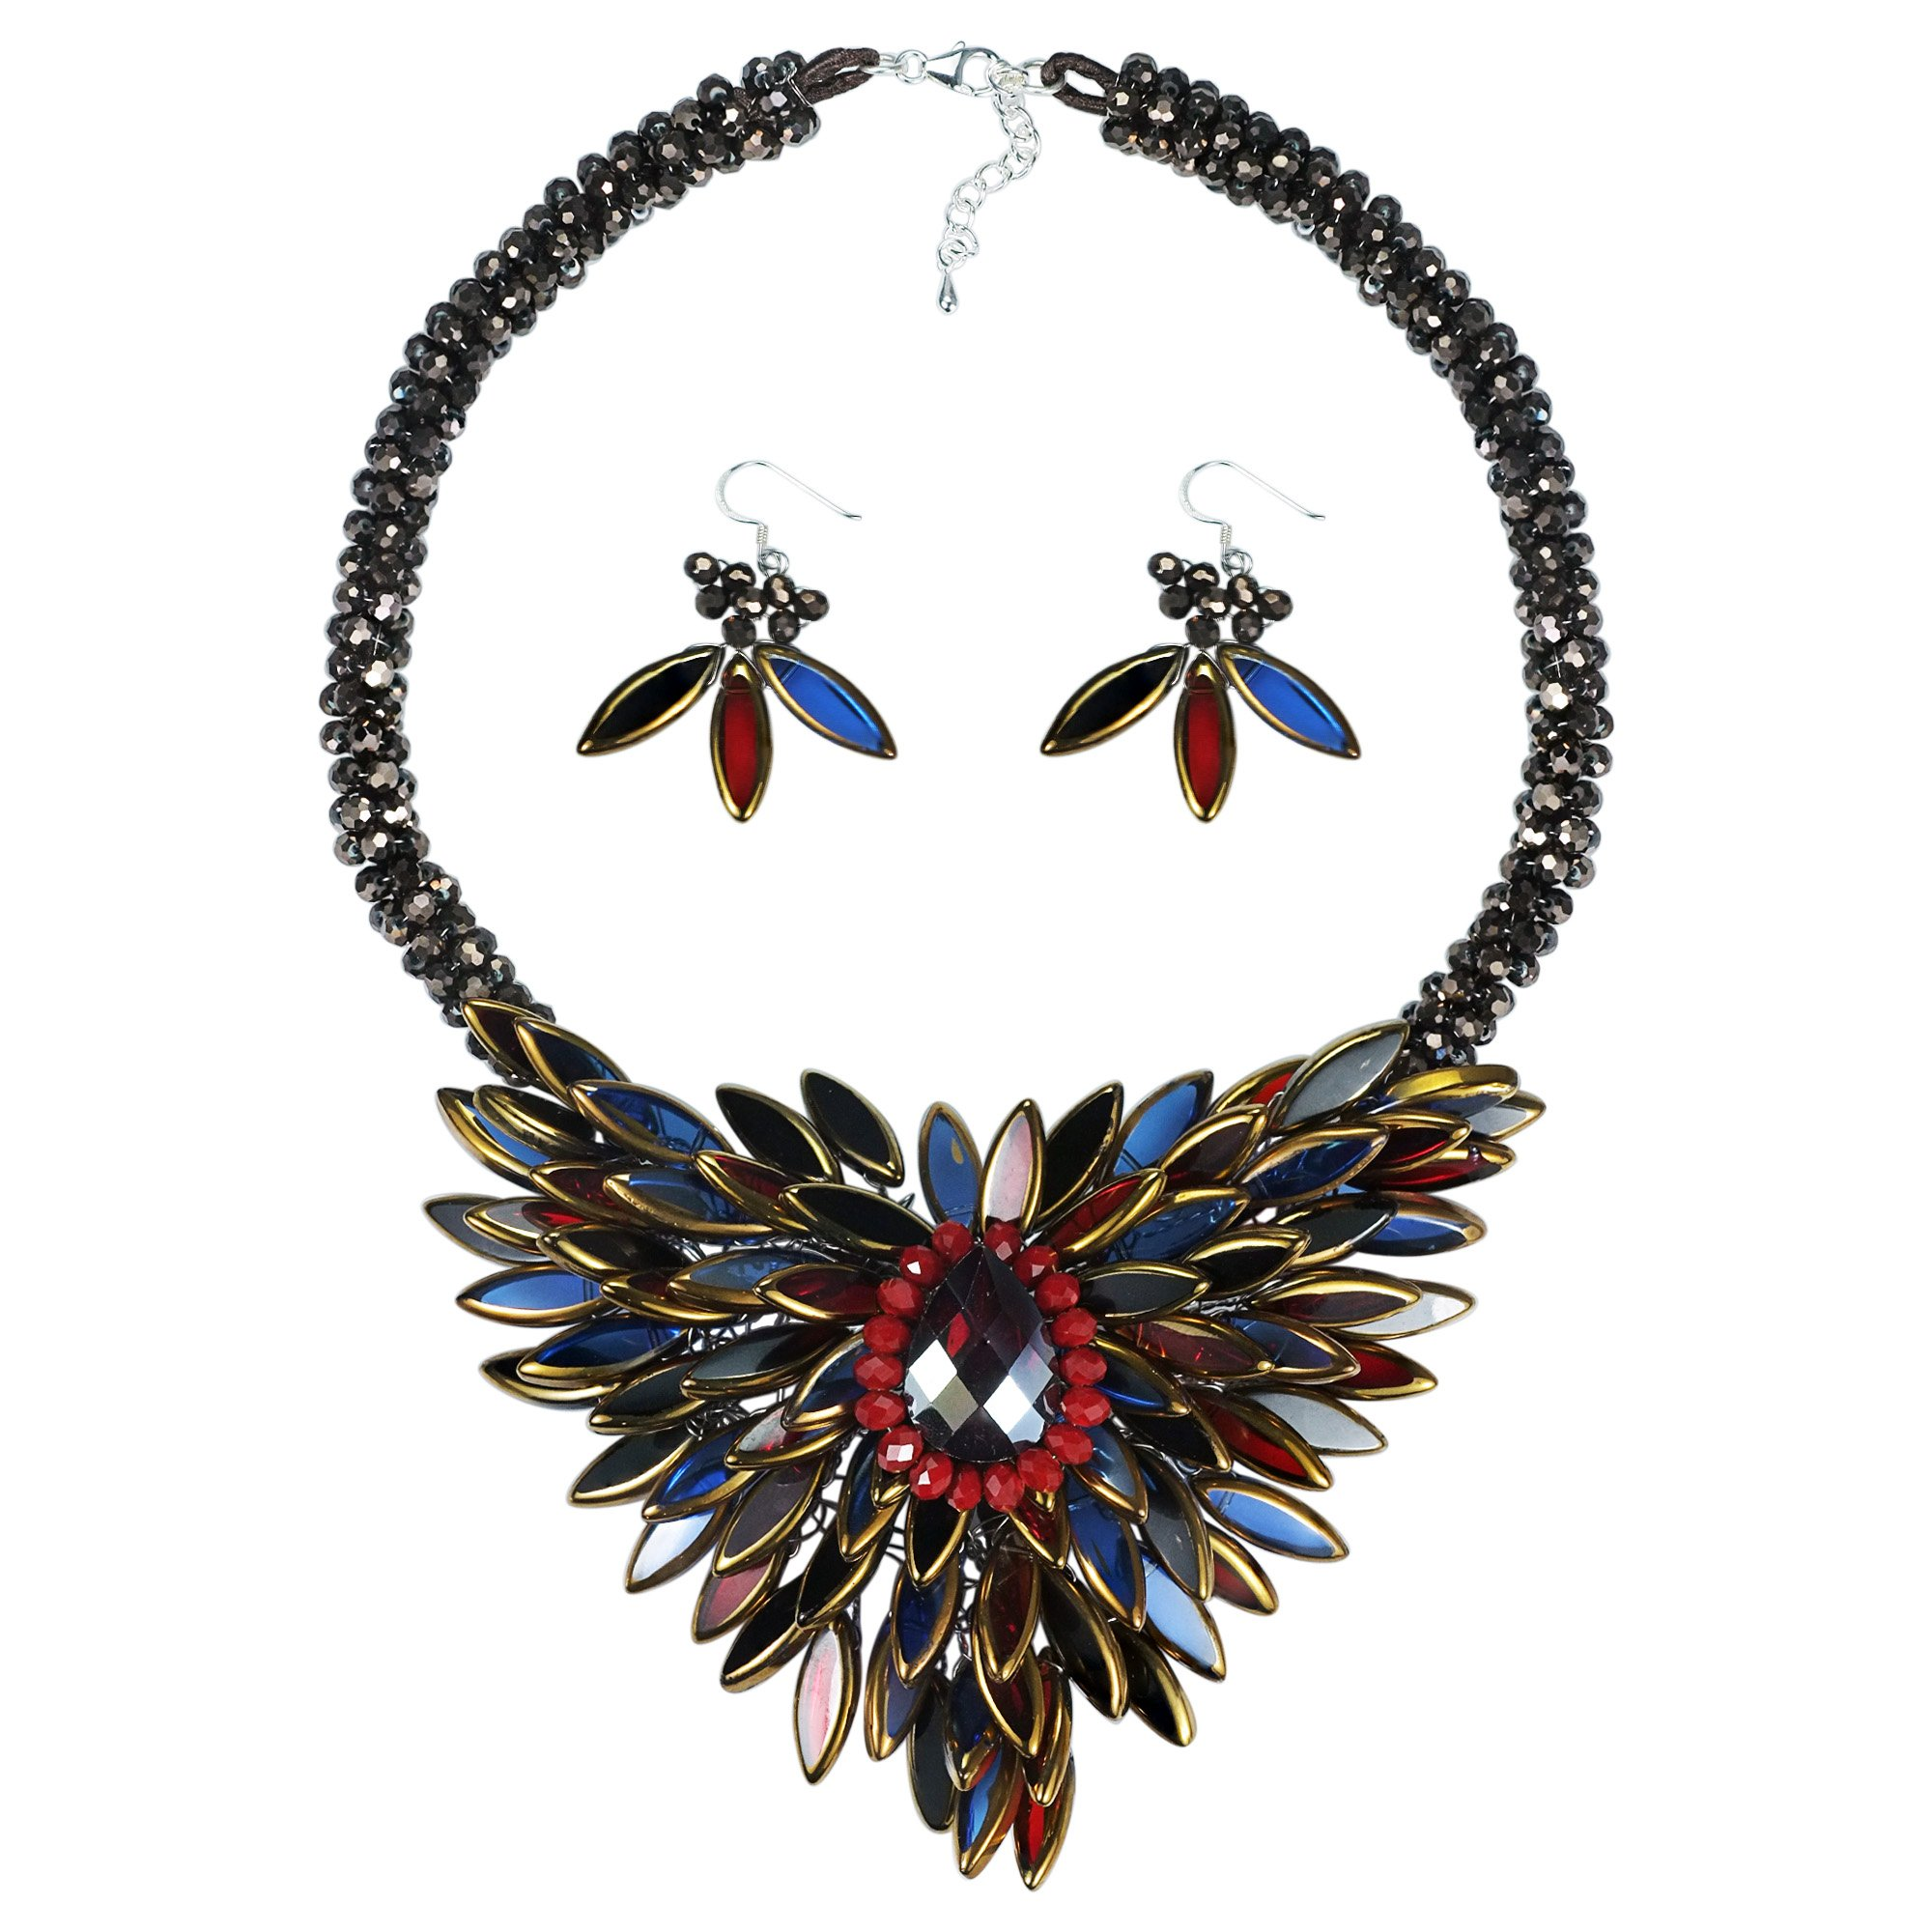 Baroque Hidden Floral Multicolor Glass Necklace and Earring Jewelry Set by AeraVida